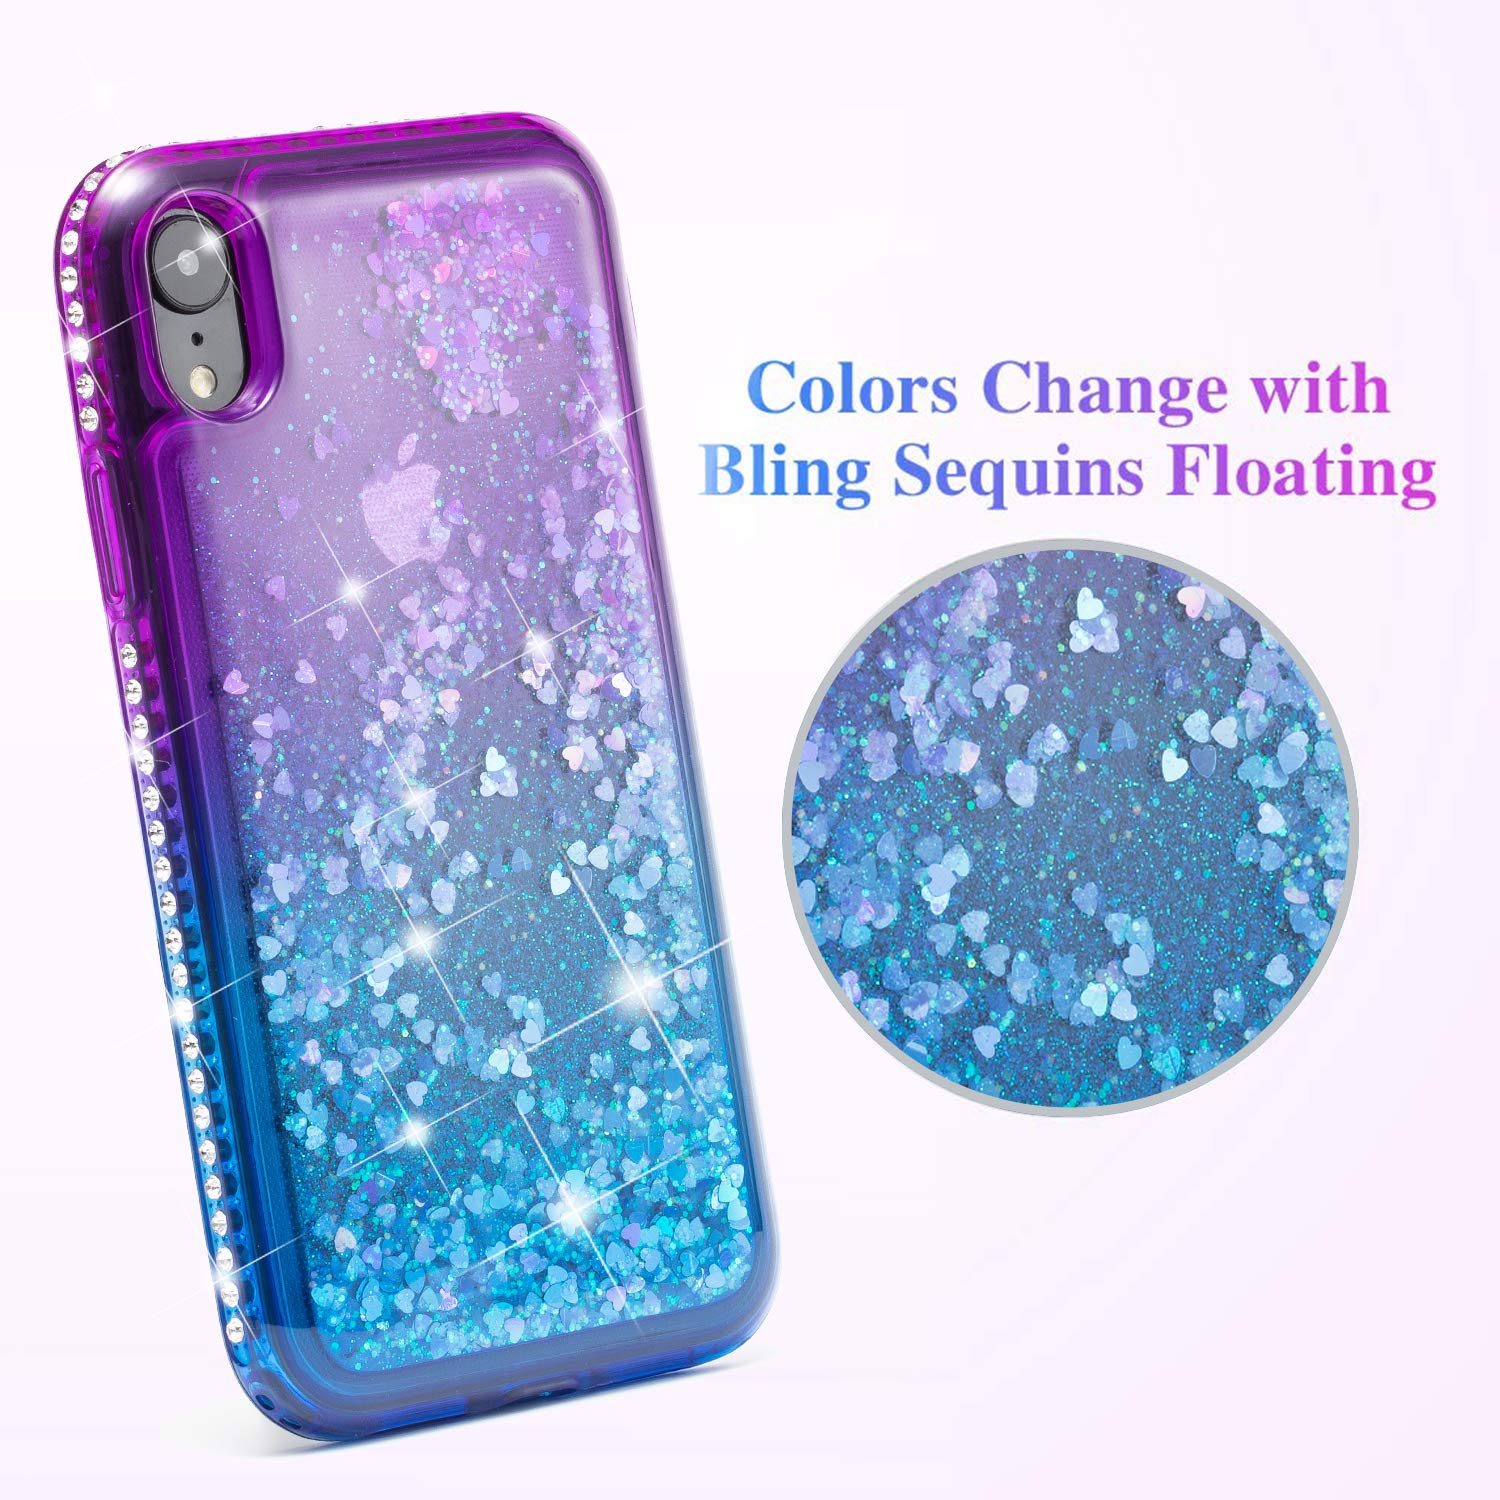 MILANMOOD iphone XR Case, Luxury Floating Glitter Case Sparkle Bling Quicksand Liquid Cover Clear TPU Bumper Cushion Reinforced Corners Girls Women Cute Case Compatible with iphone XR, Purple Blue